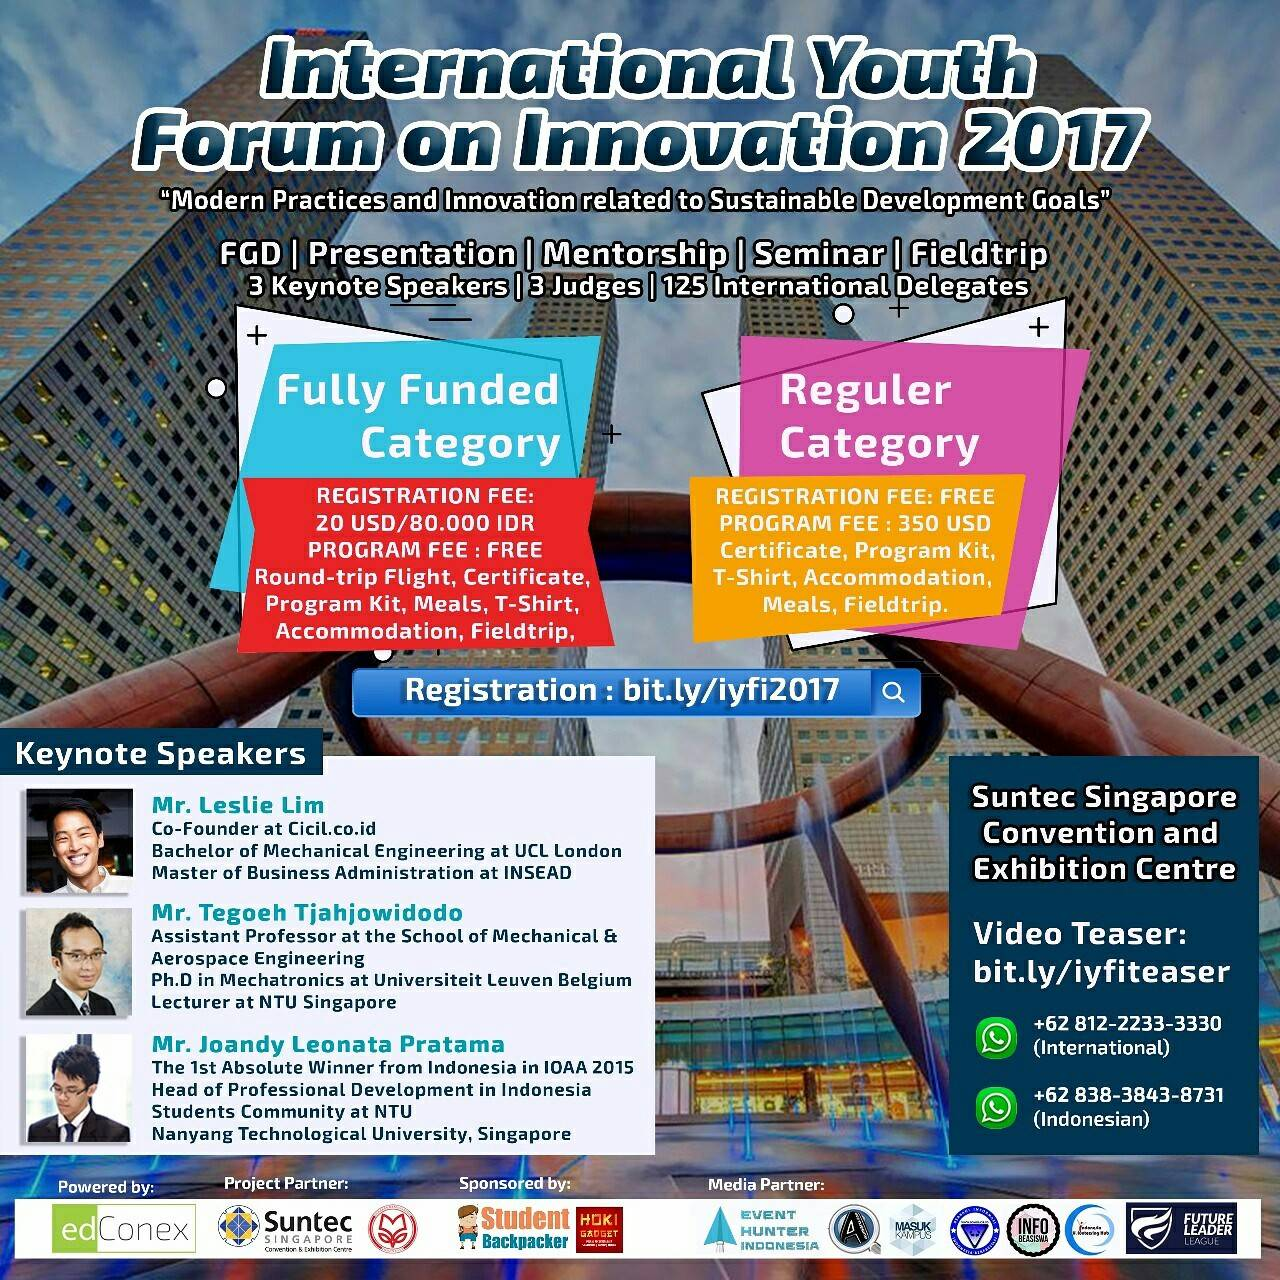 INTERNATIONAL YOUTH FORUM ON INNOVATION 2017